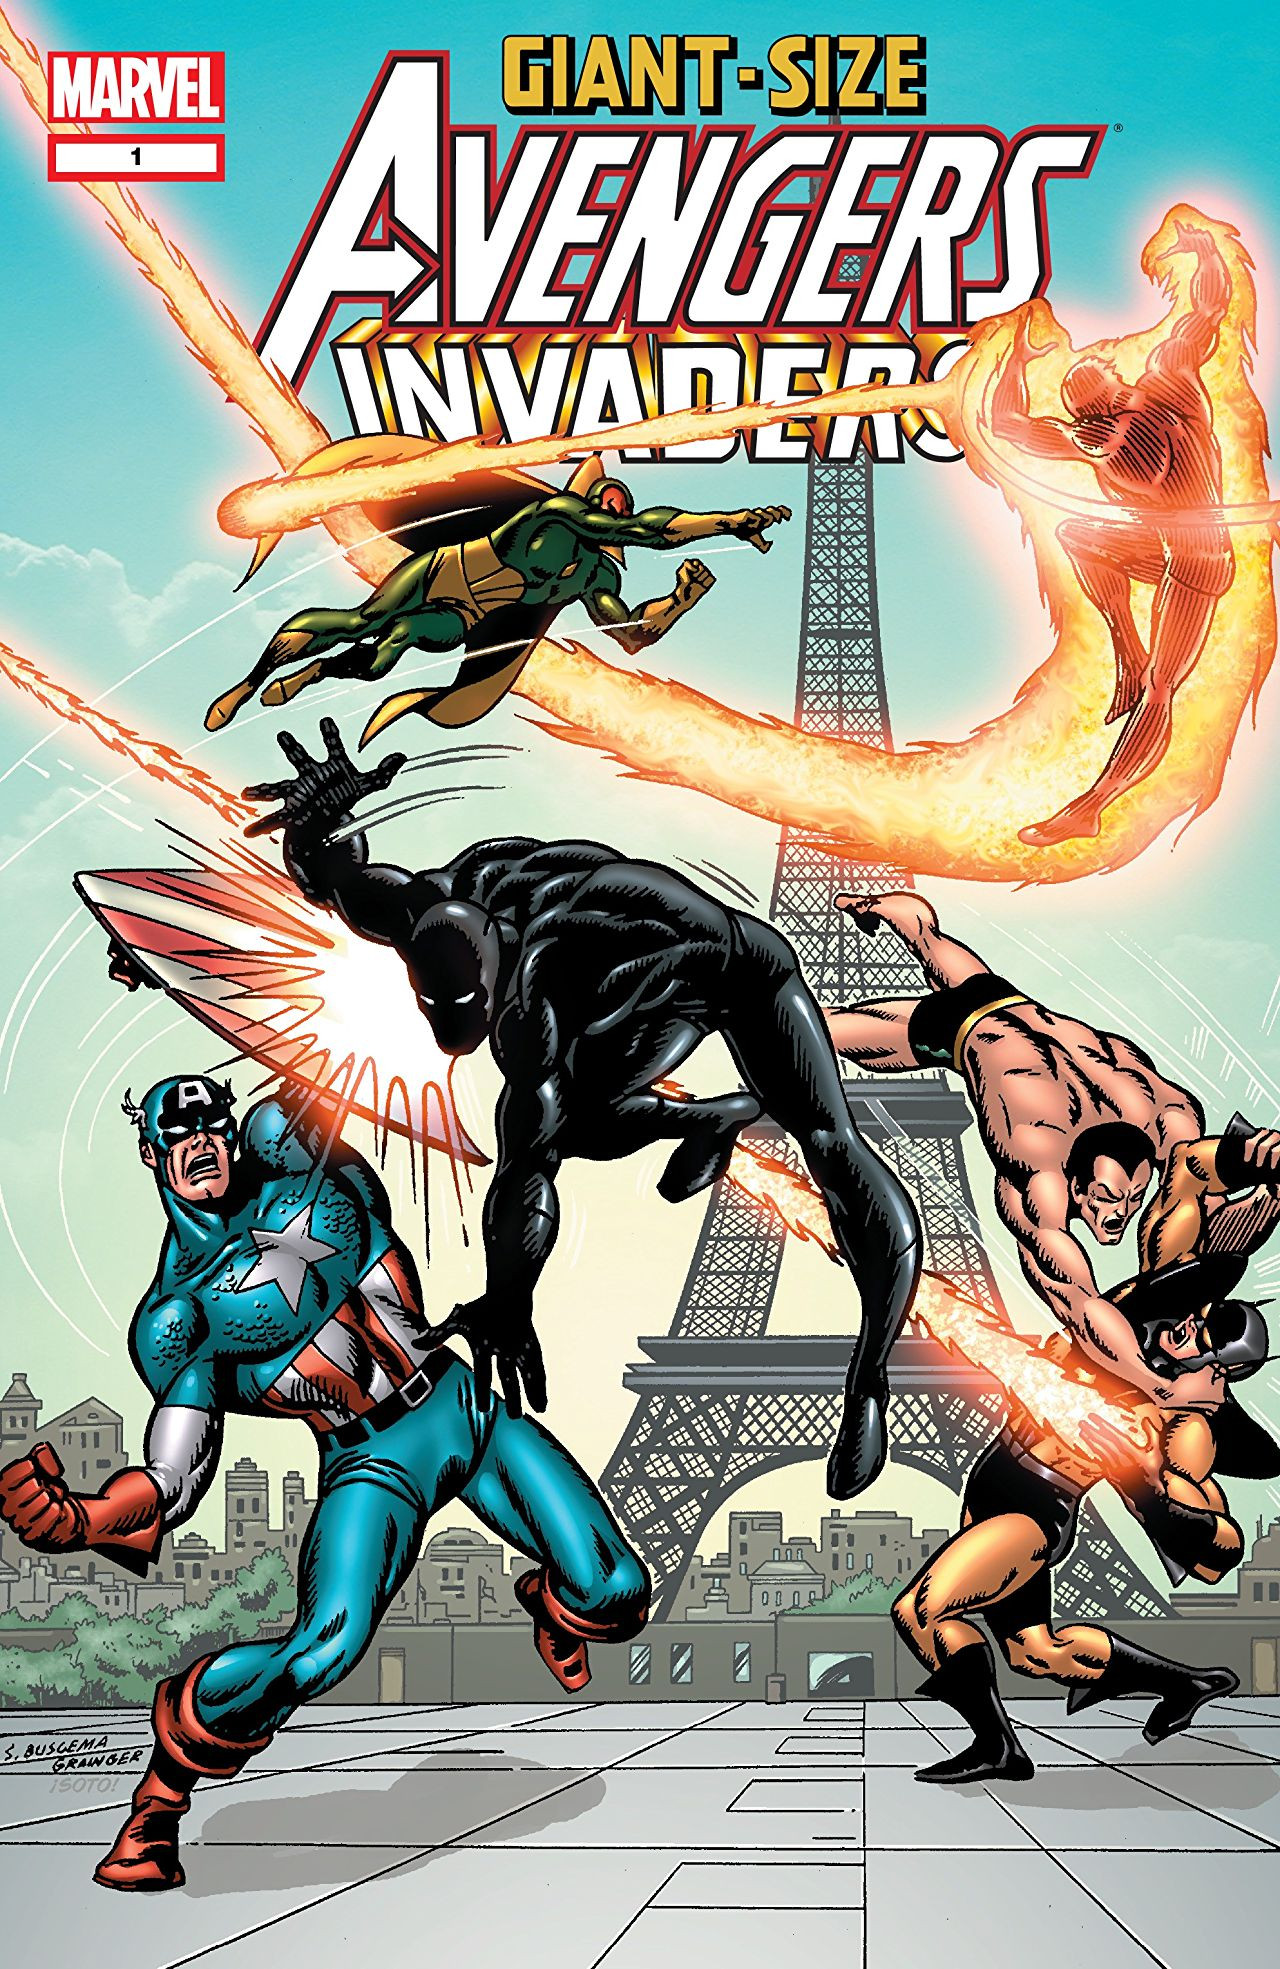 Giant-Size Avengers / Invaders Vol 1 1